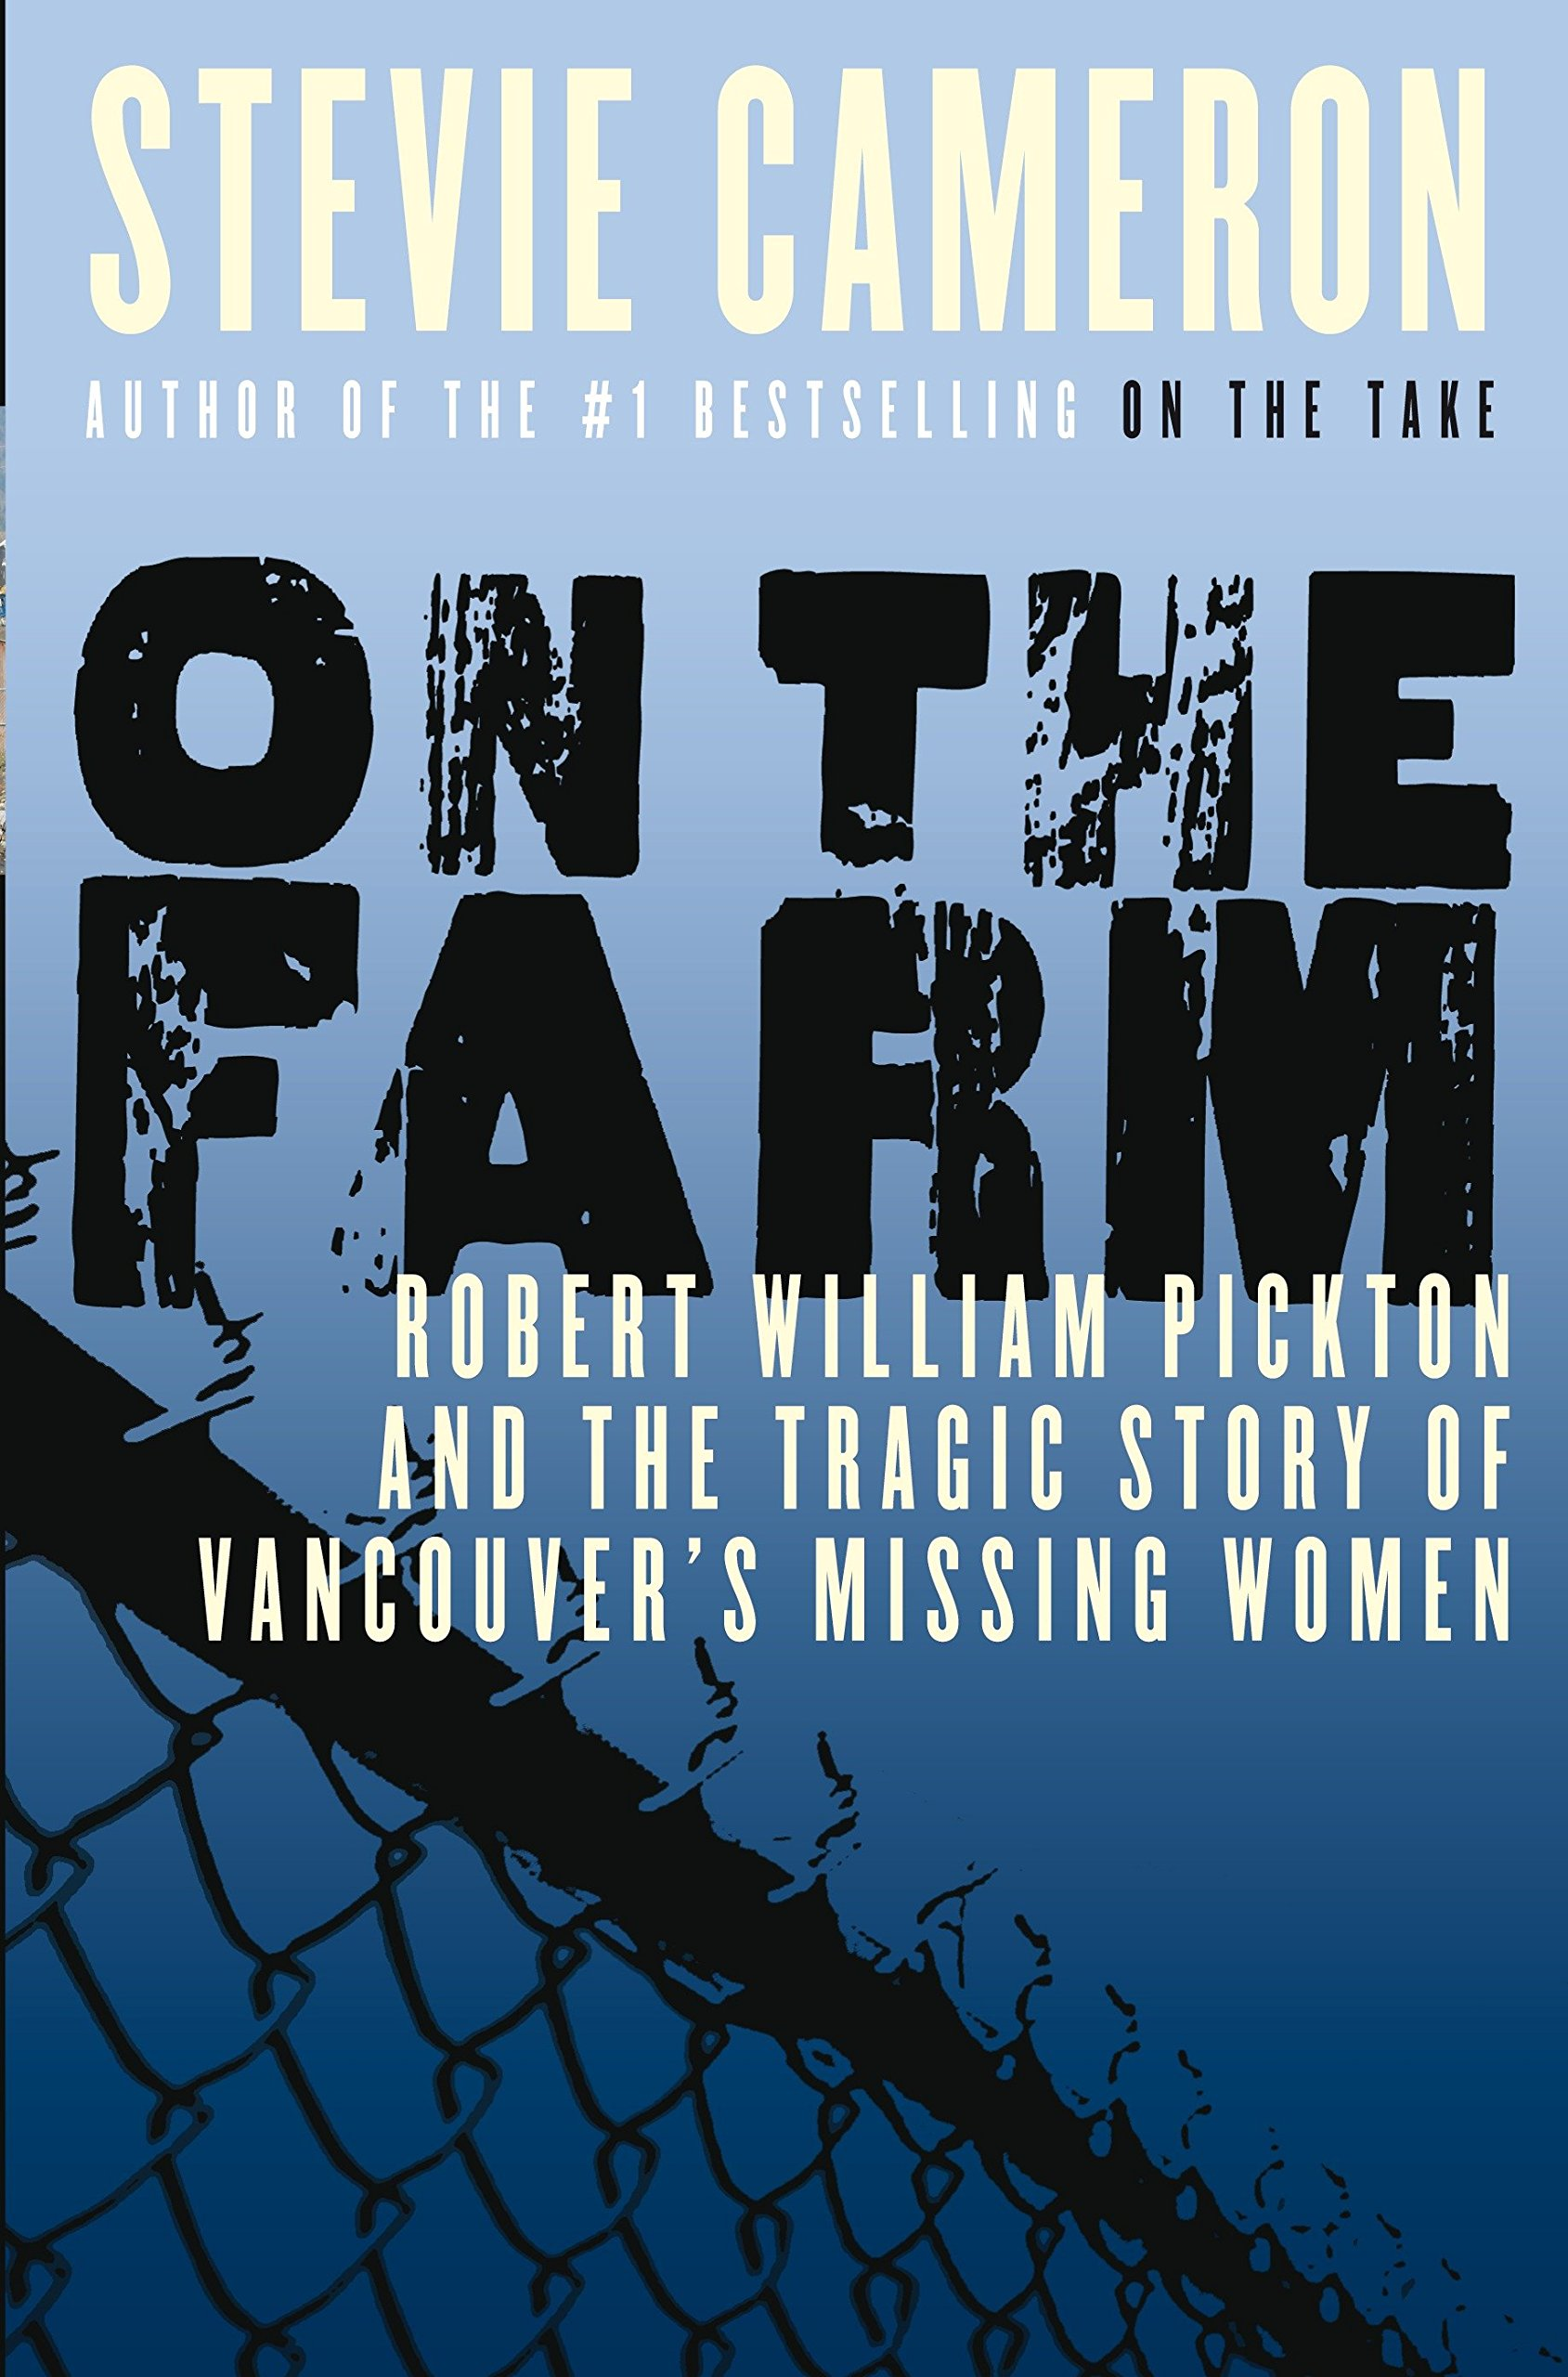 On the Farm: Robert William Pickton and the Tragic Story of Vancouver's Missing Women PDF